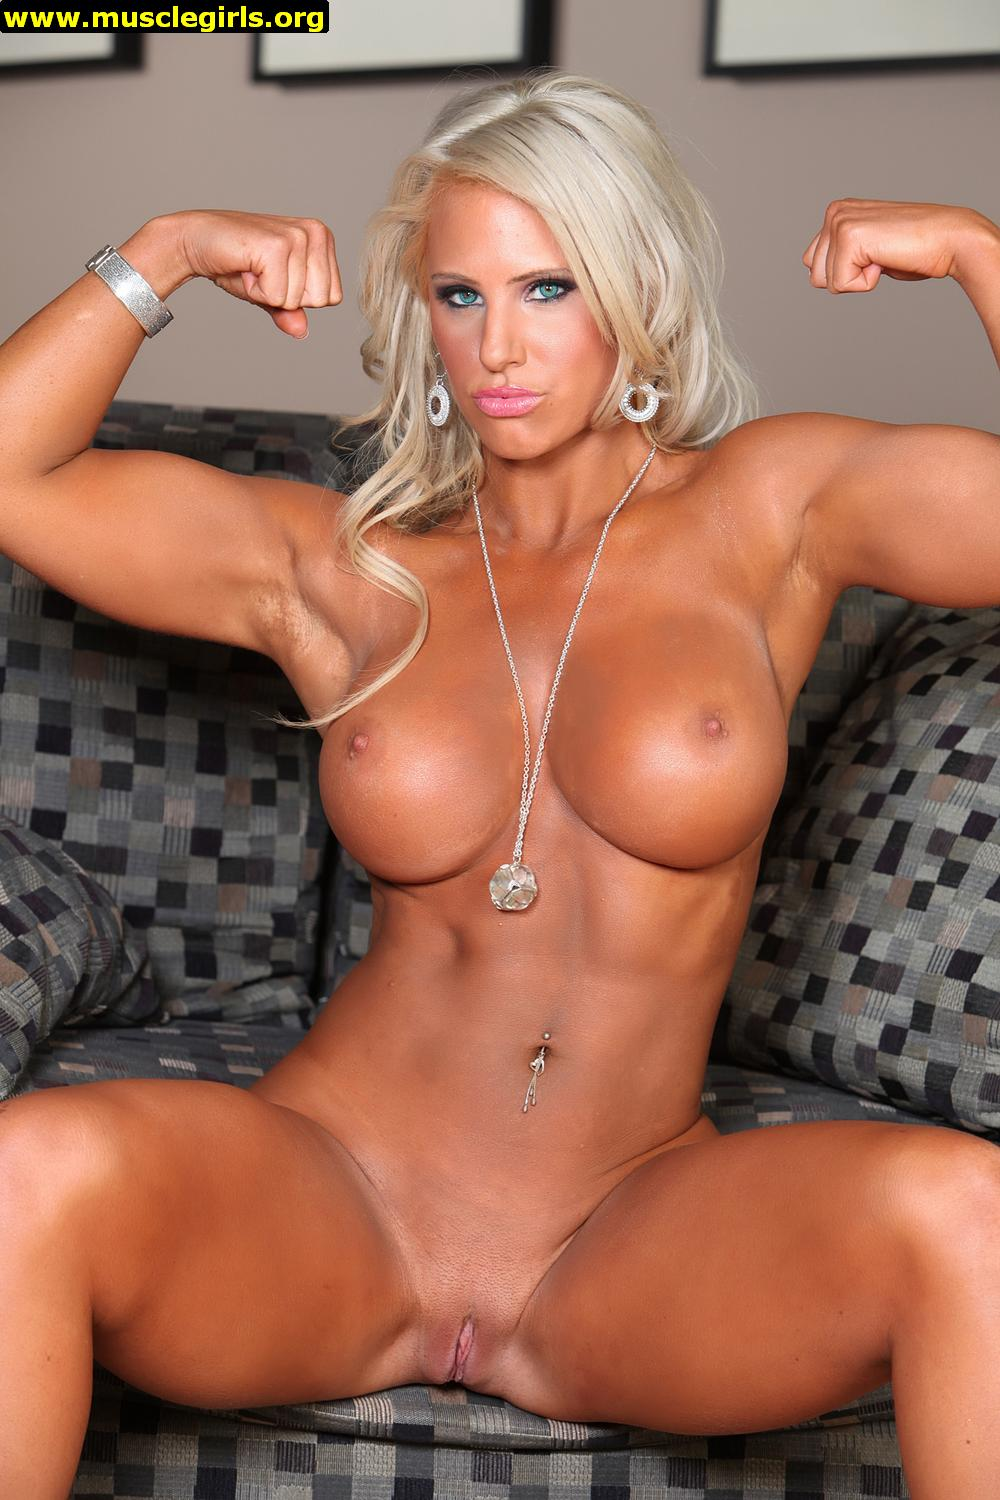 Naked muscle girls tumblr